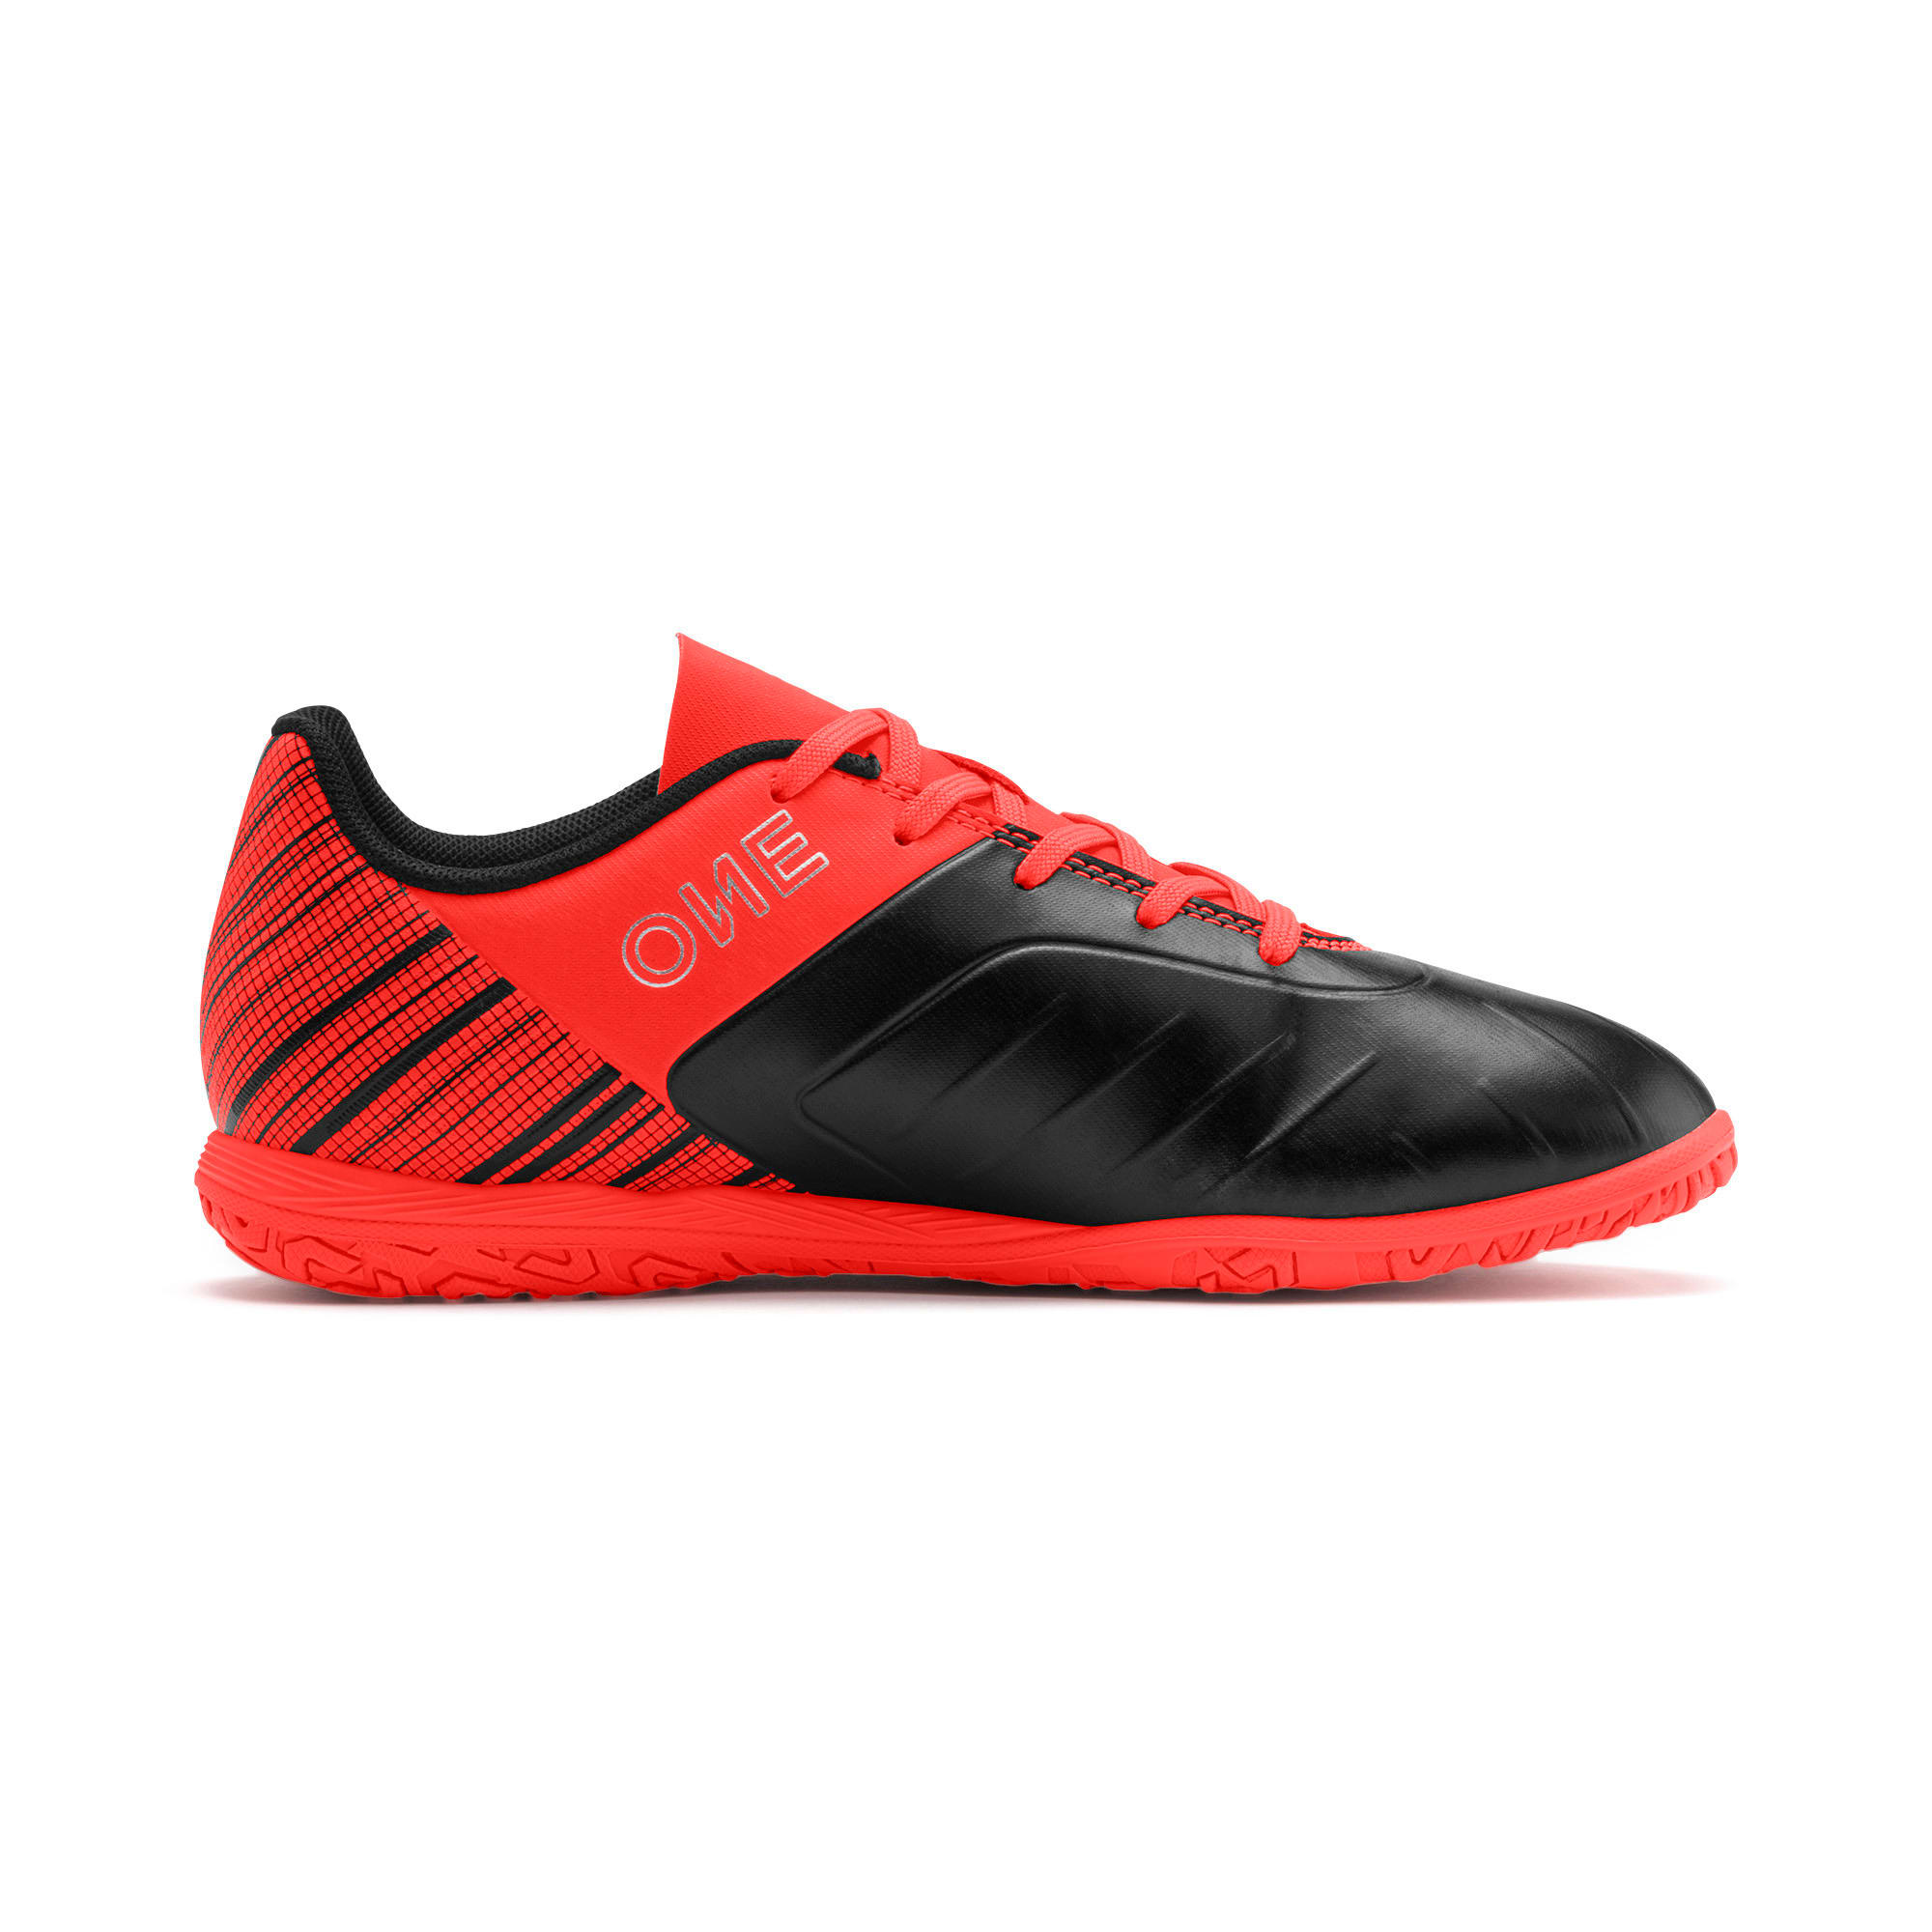 Thumbnail 5 of PUMA ONE 5.4 IT Soccer Shoes JR, Black-Nrgy Red-Aged Silver, medium